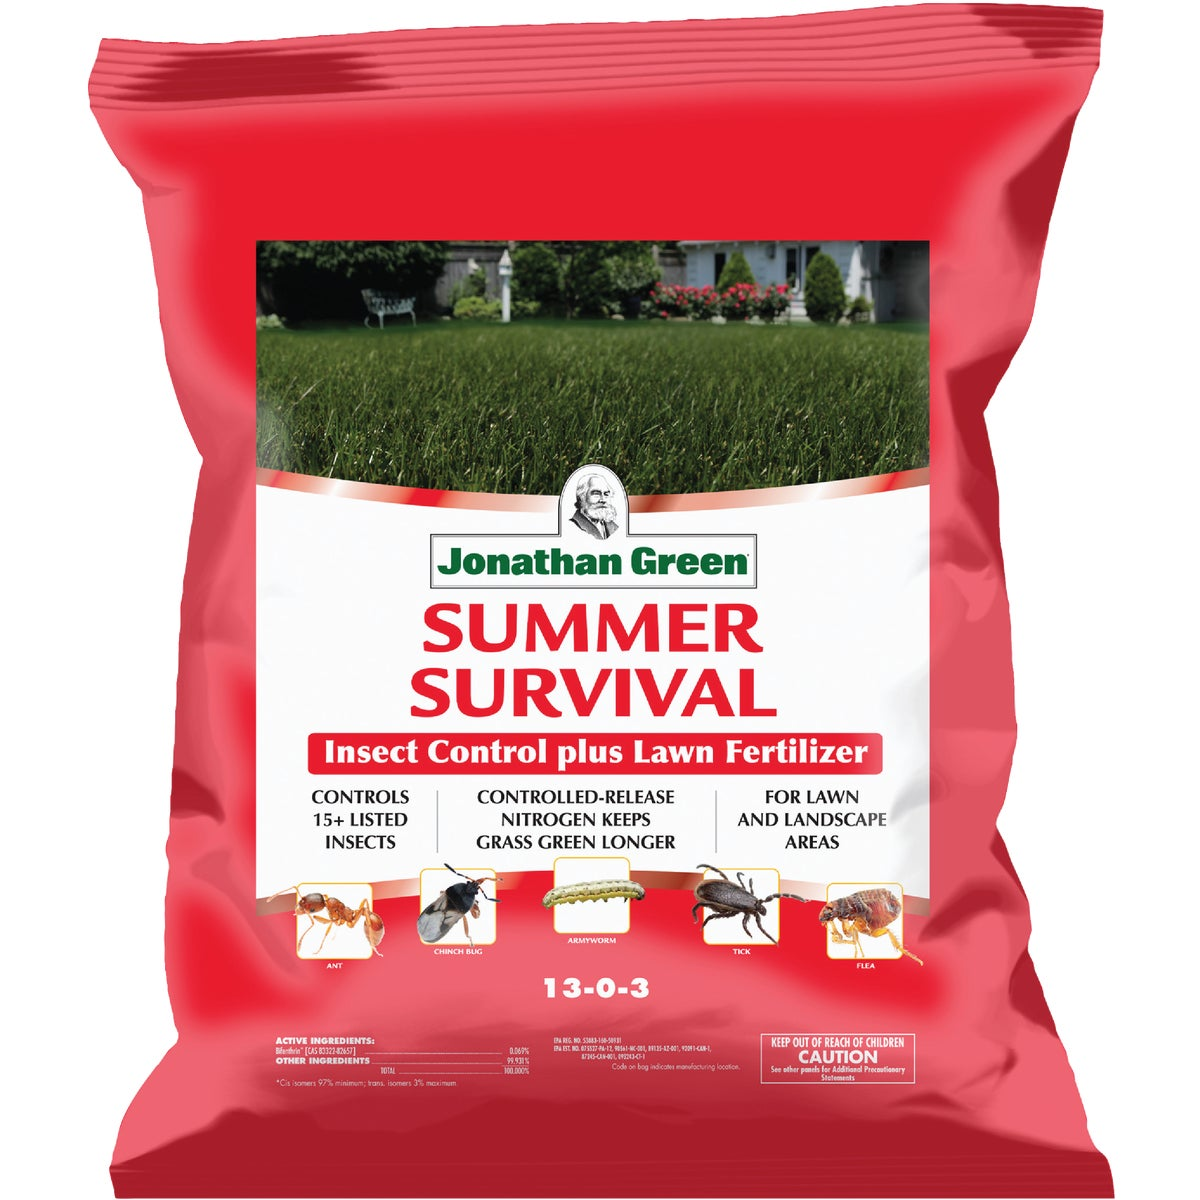 5M SUMR SURV FERTILIZER